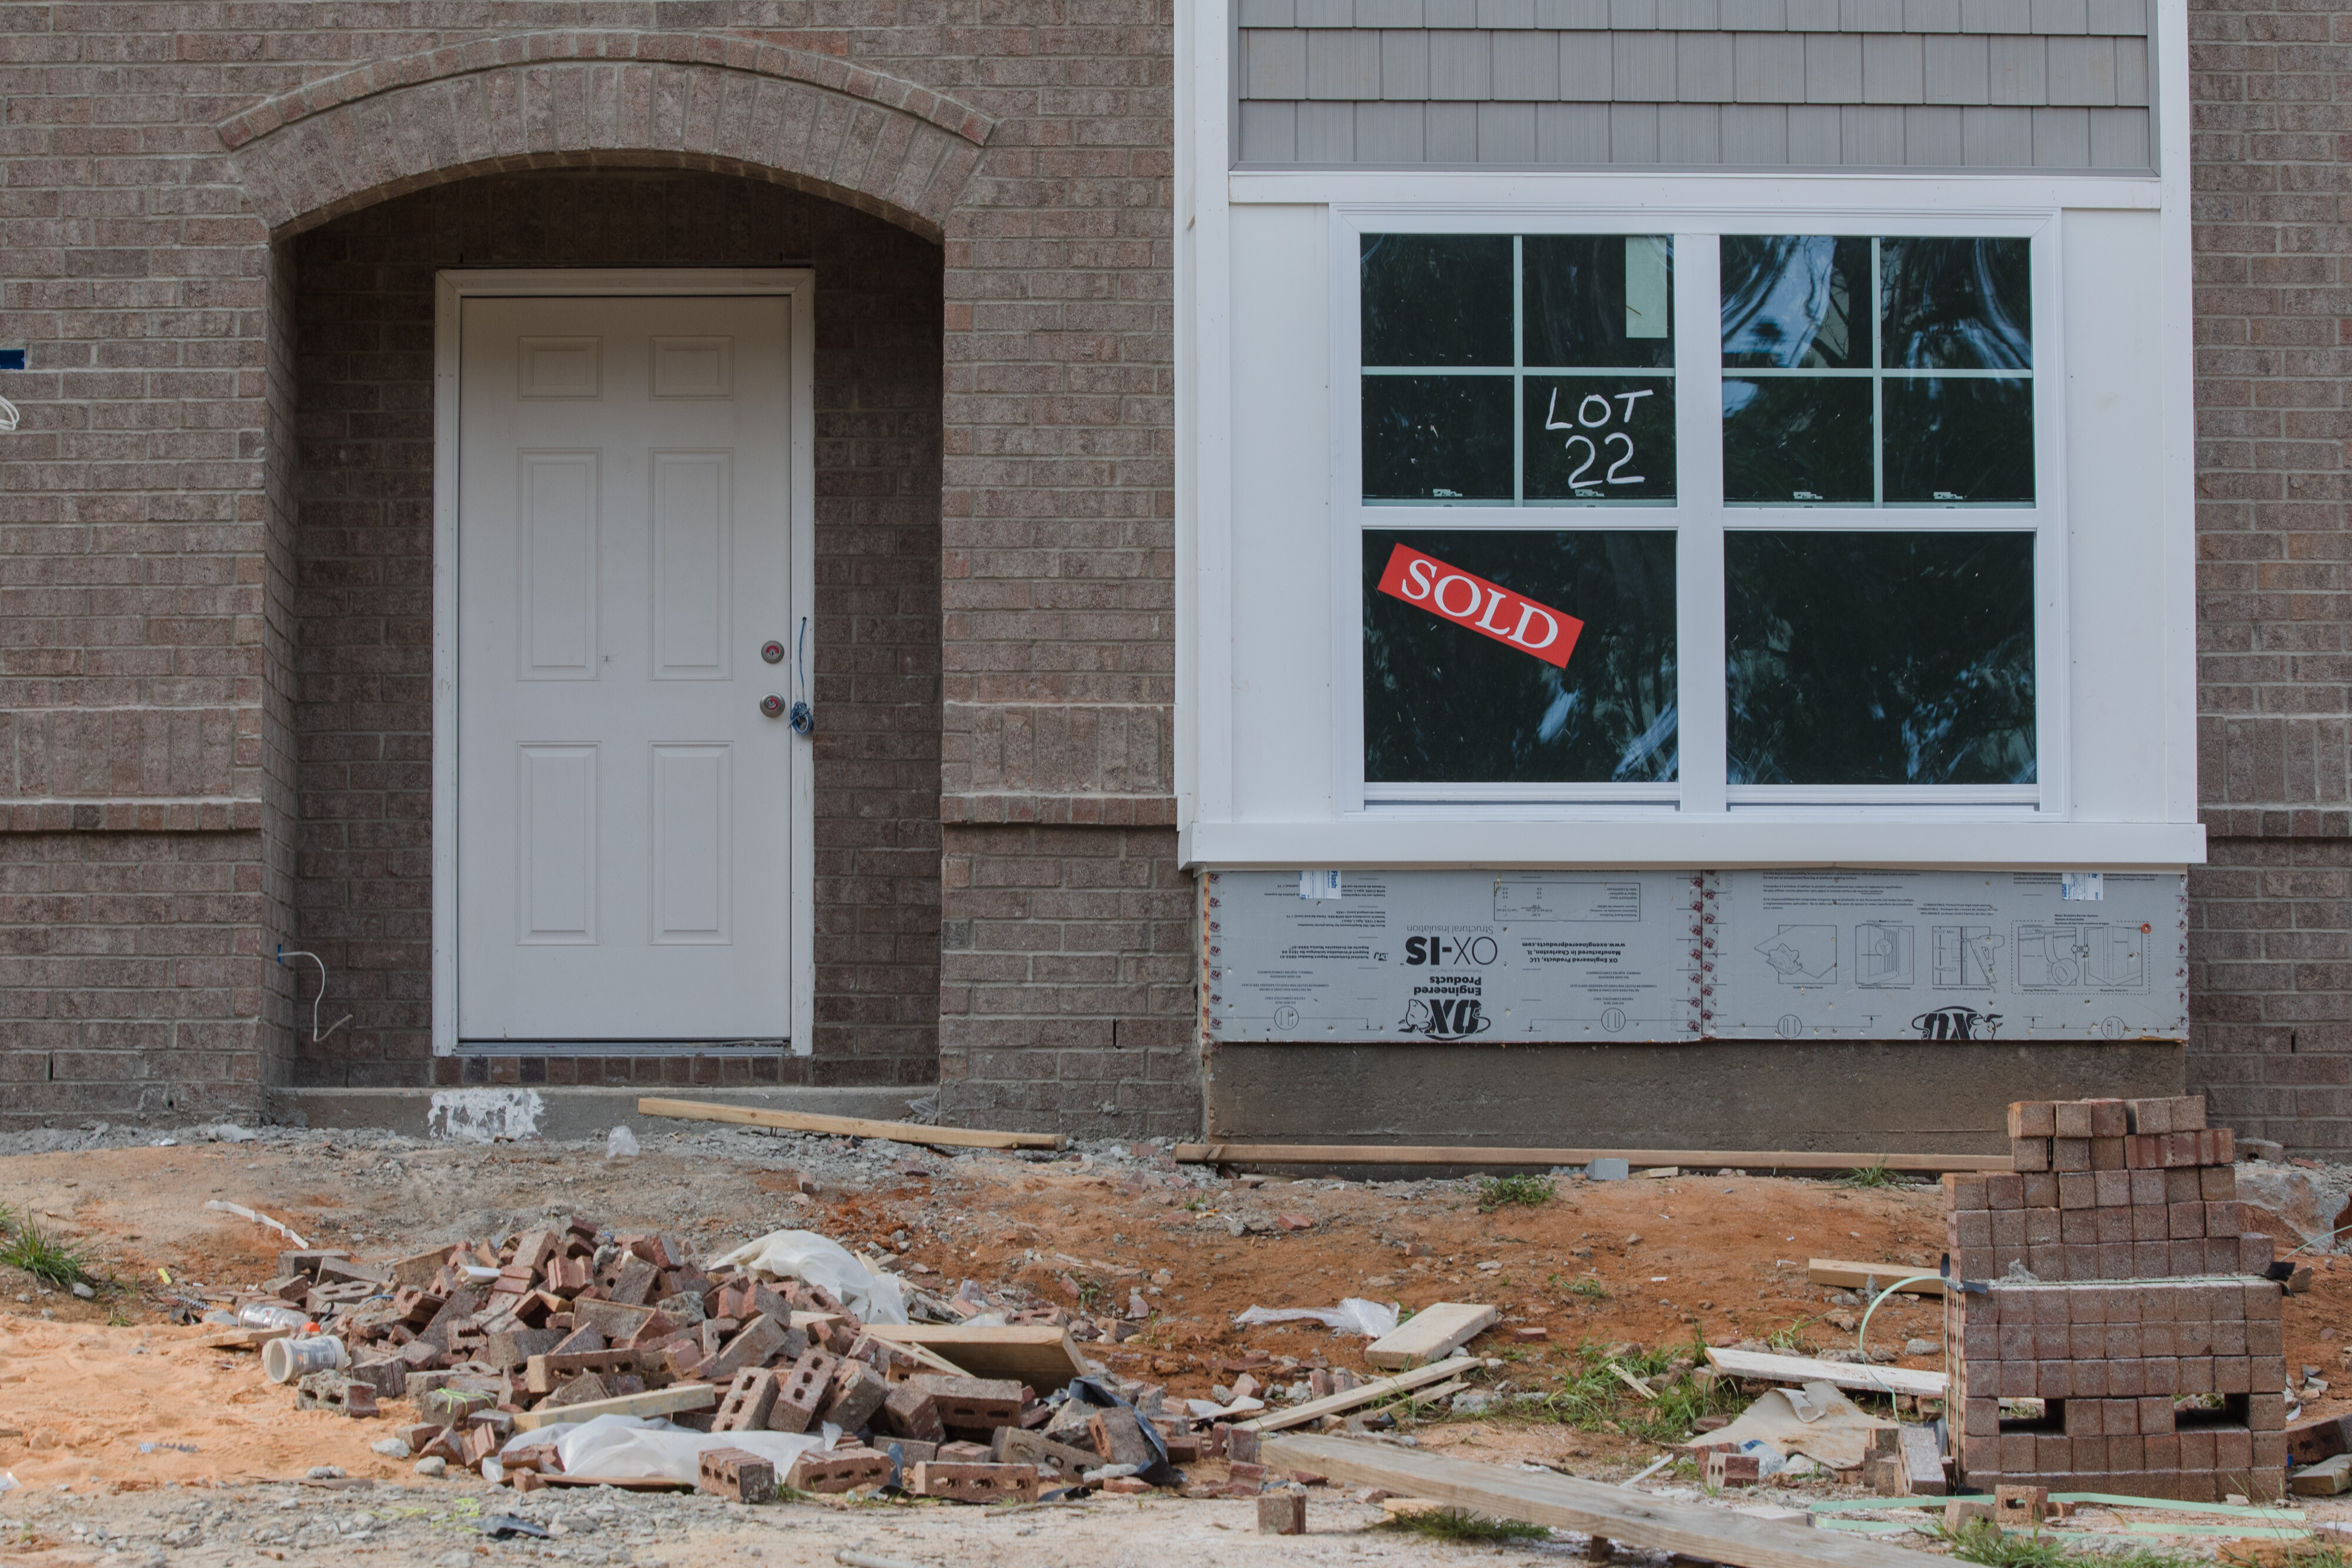 Housing is the economy's Energizer bunny: It keeps going and going